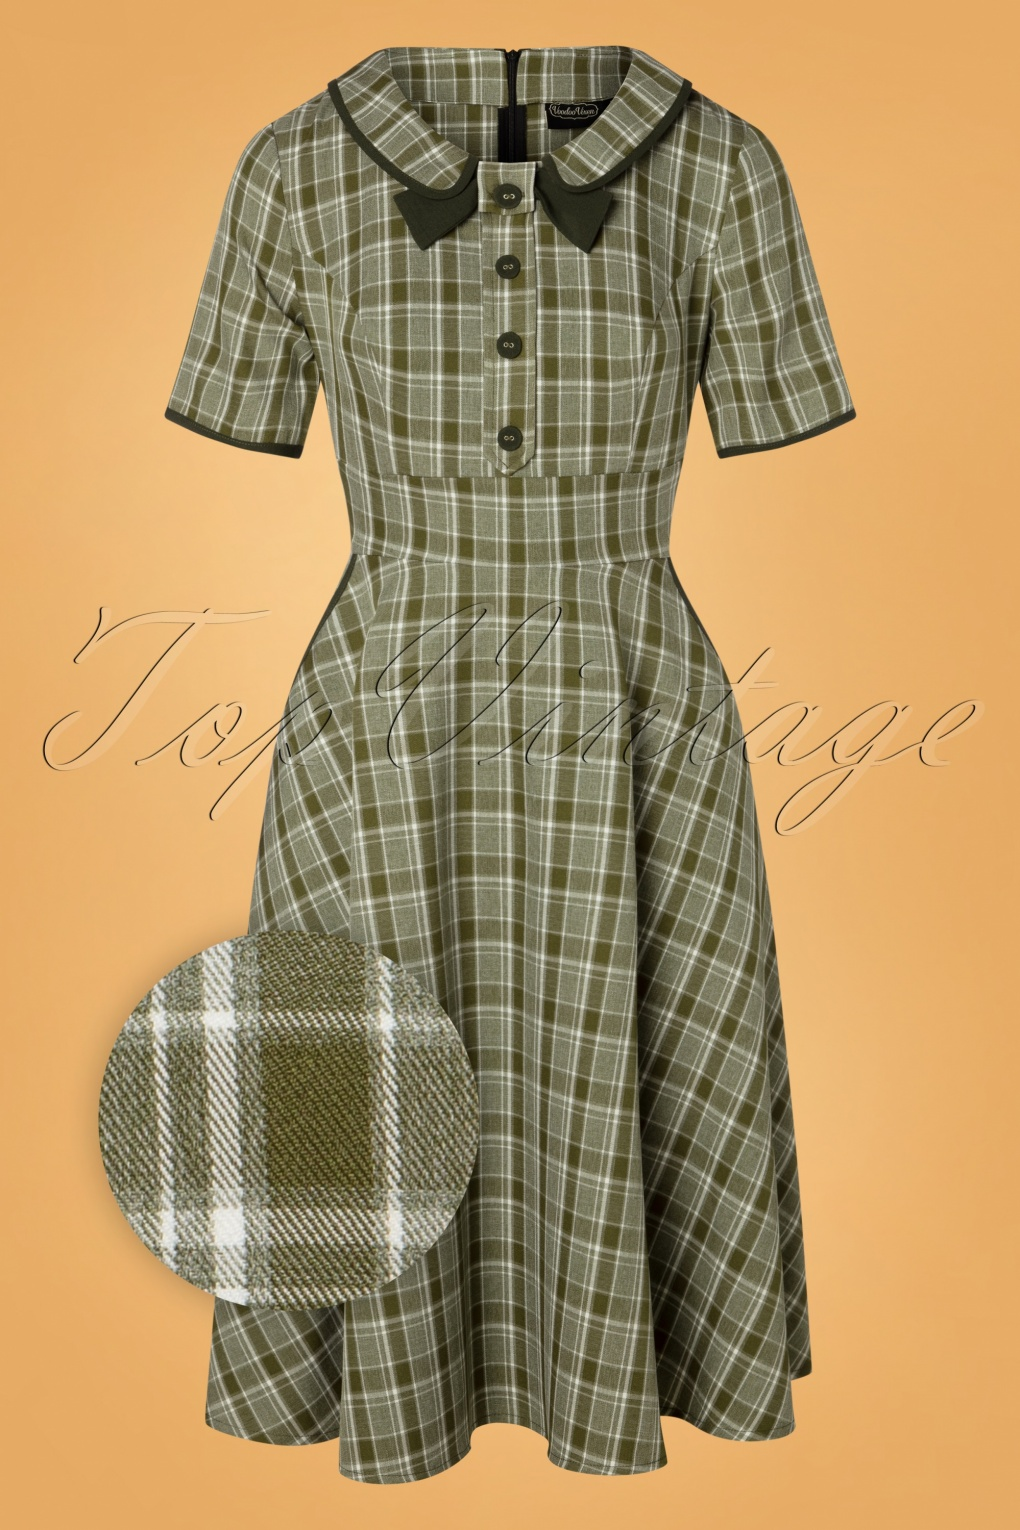 1940s Plus Size Fashion: Style Advice from 1940s to Today 40s Kaylee Tartan Swing Dress in Khaki £62.18 AT vintagedancer.com